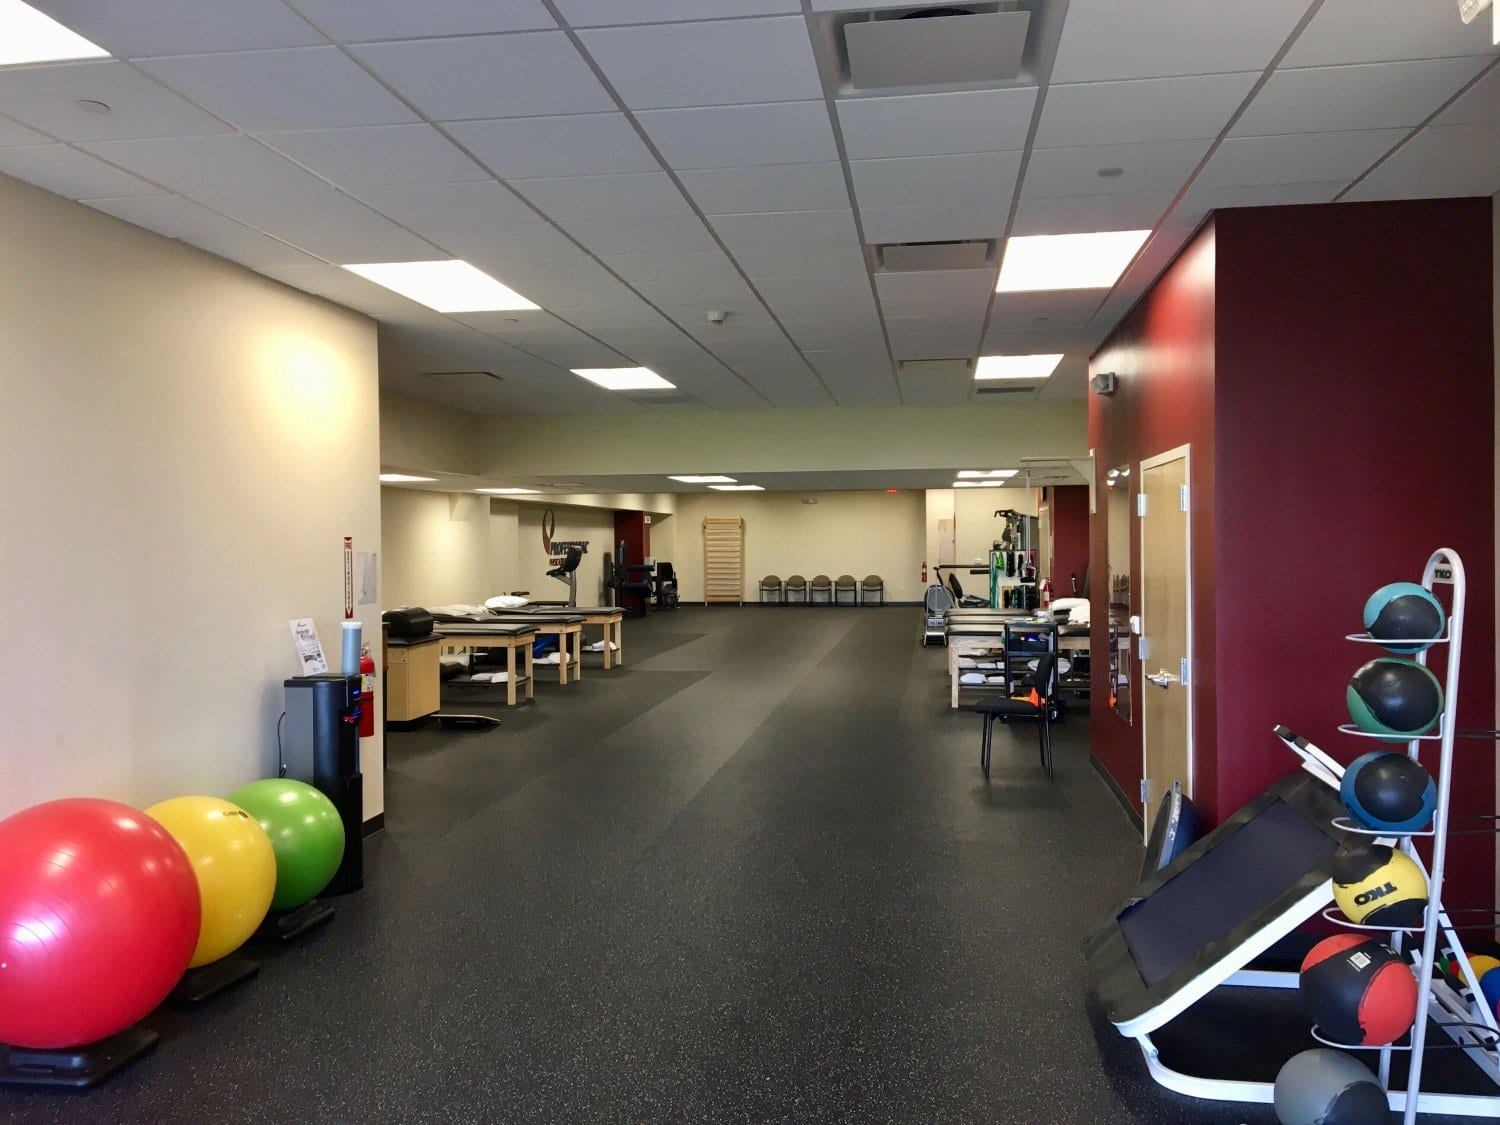 An image of the interior of our physical therapy clinic in Morristown, New Jersey at Headquarters Plaza. Image includes exercise balls, stretch beds, and medicine balls.